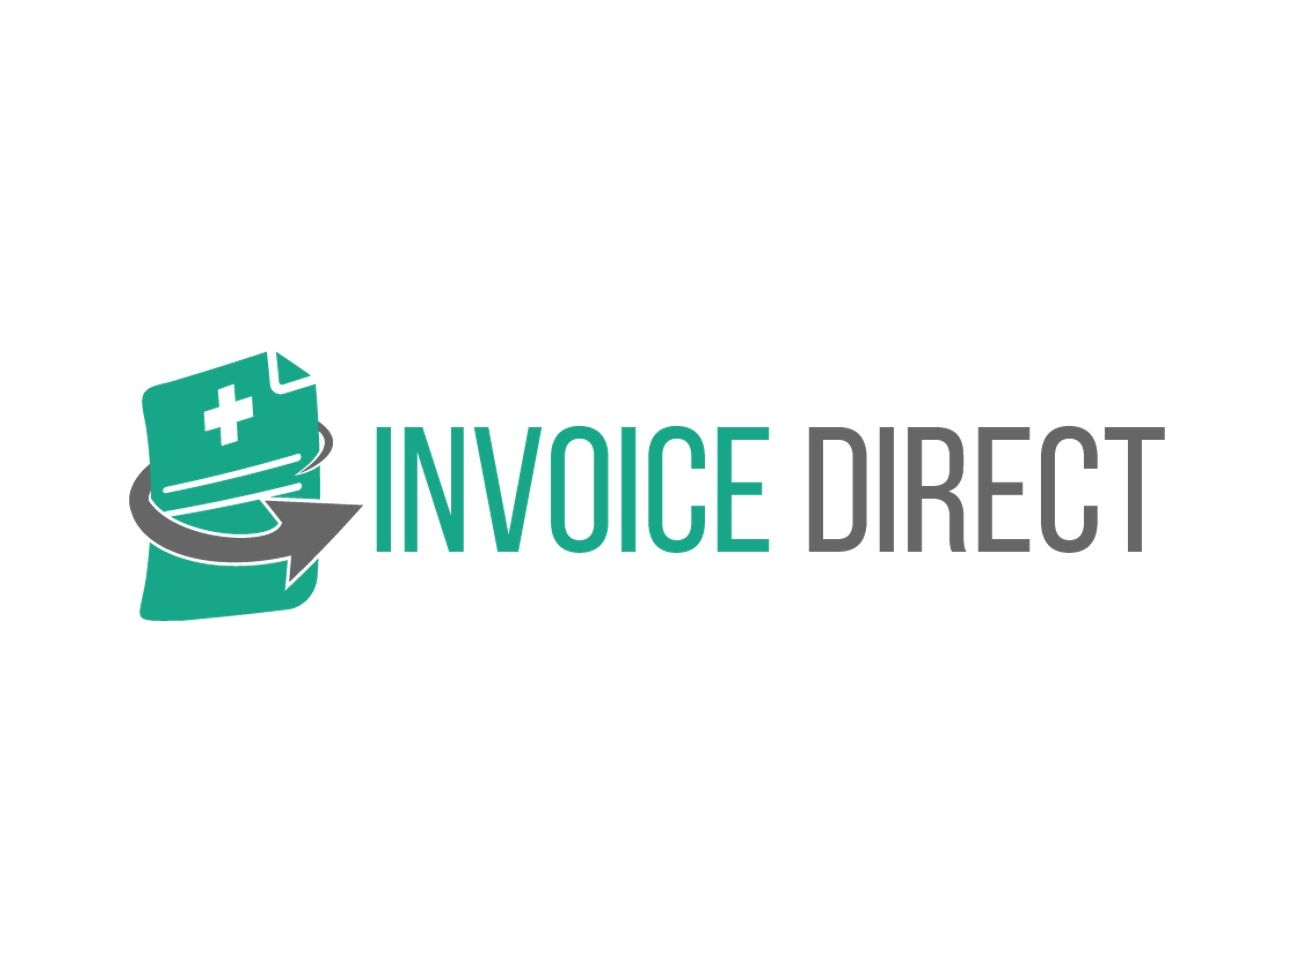 Invoice Direct on Computer